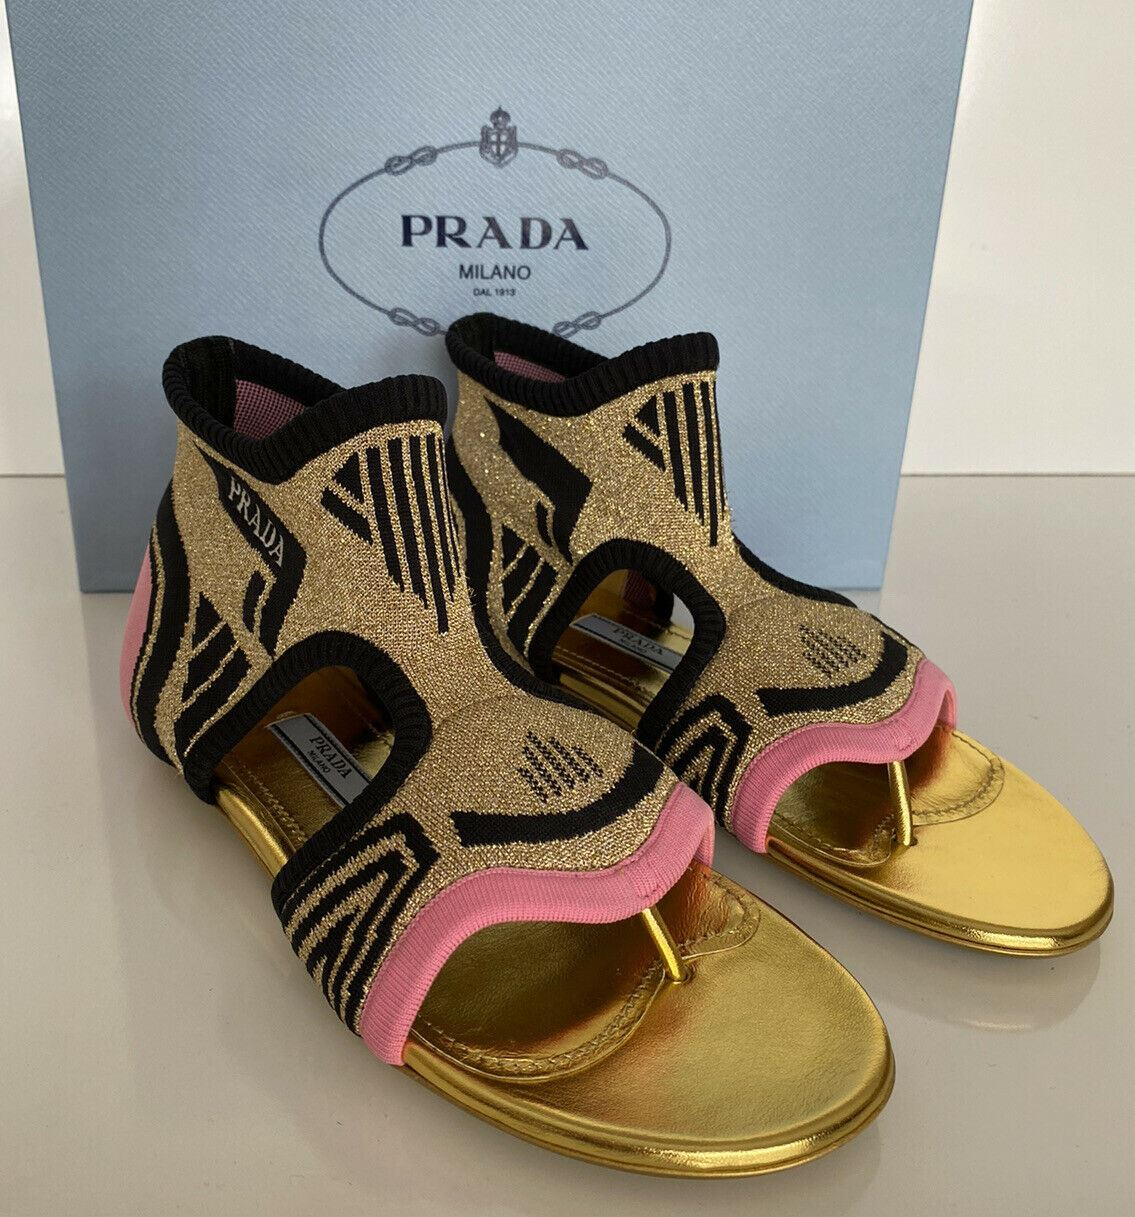 NIB PRADA Milano Womens Pink & Purple Thong Knit In Nylon Flats Sandal 36 1Y442L